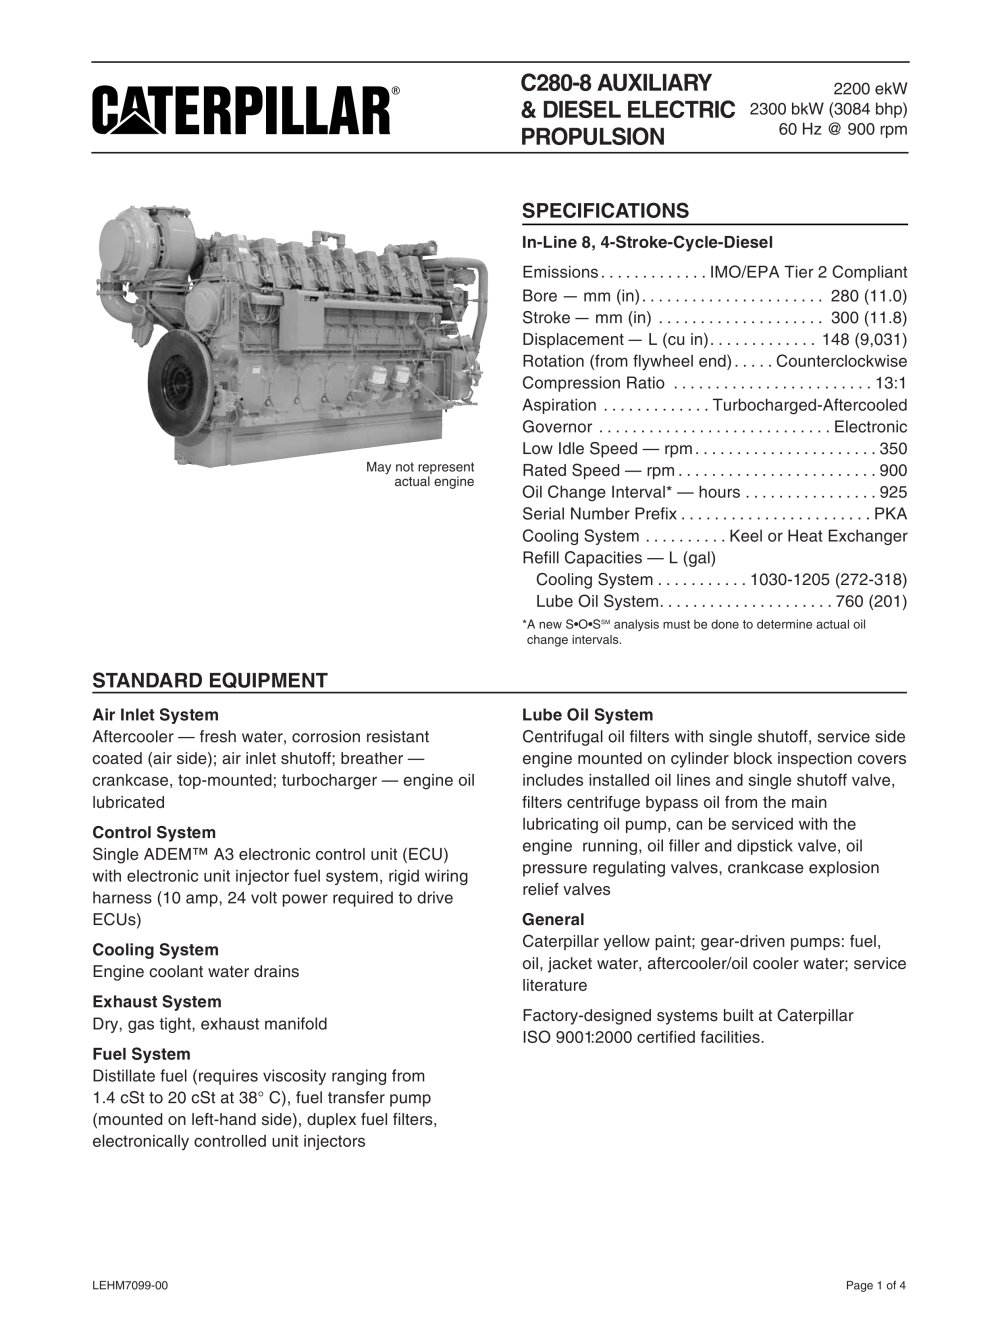 Cat 3046 Engine Diagram Trusted Wiring Diagrams 3034 C280 8 Genset Spec Sheet Caterpillar Marine Power Systems Rh Pdf Nauticexpo Com